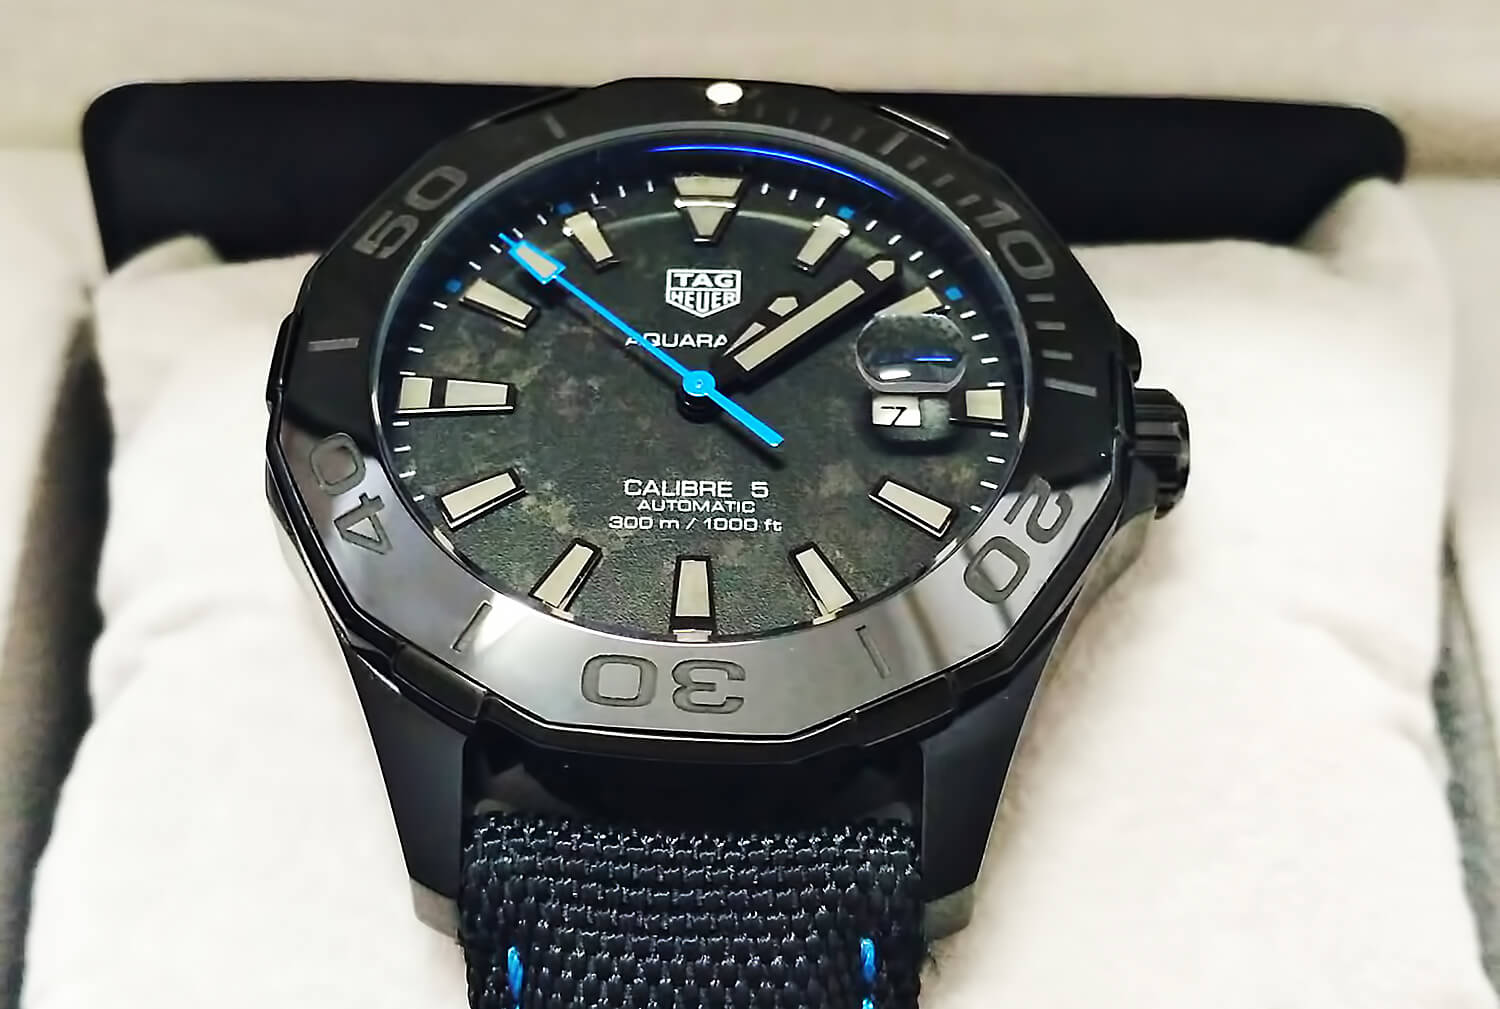 Циферблат реплики Aquaracer Carbon Edition